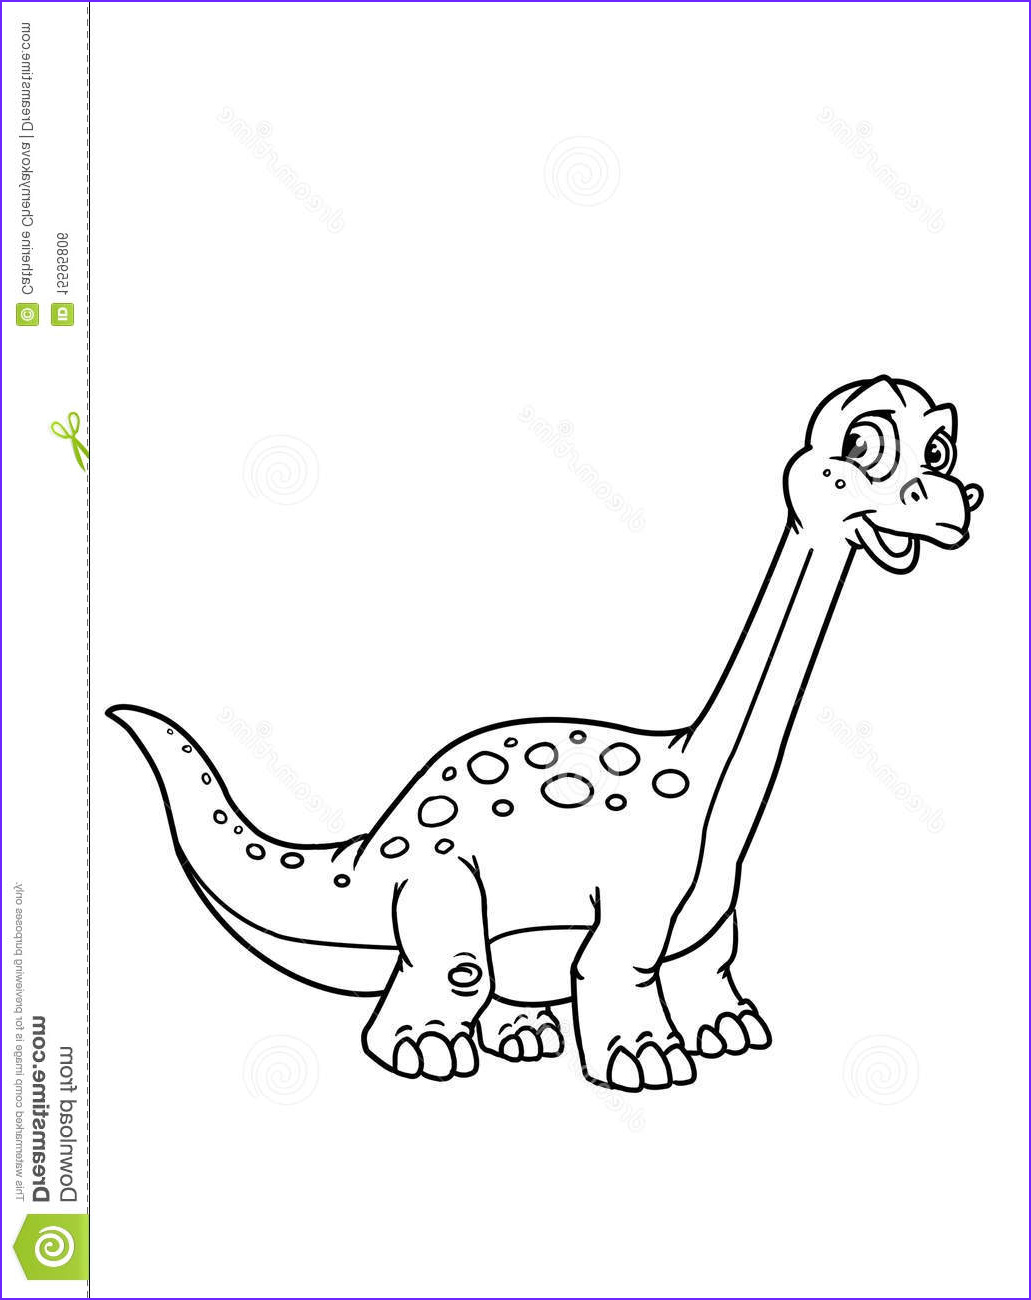 royalty free stock image coloring pages dinosaur image